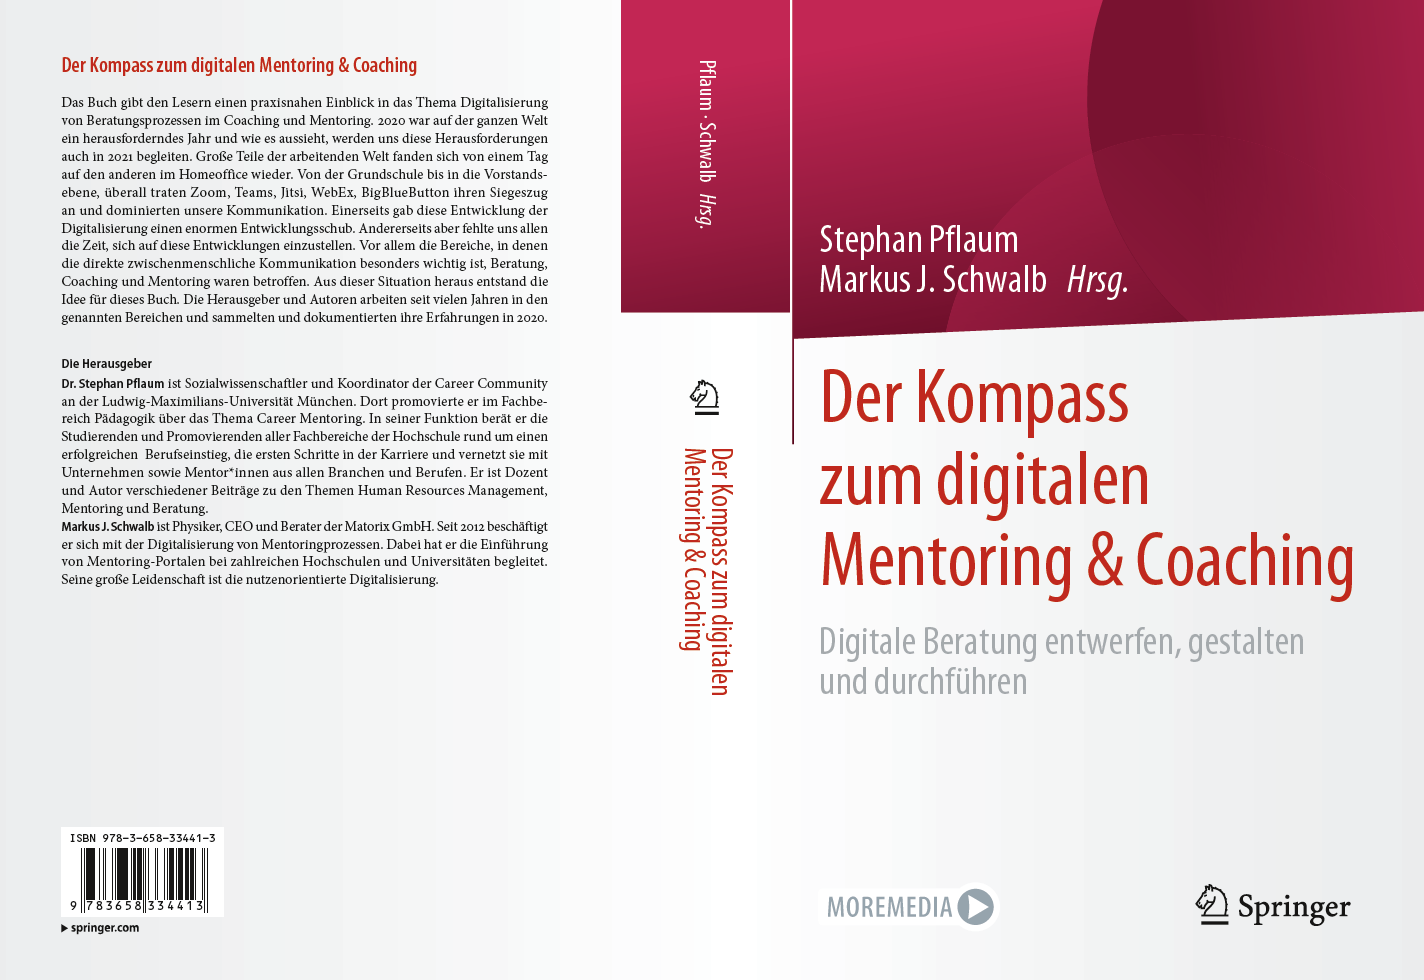 Der Kompass zum digitalen Mentoring & Coaching